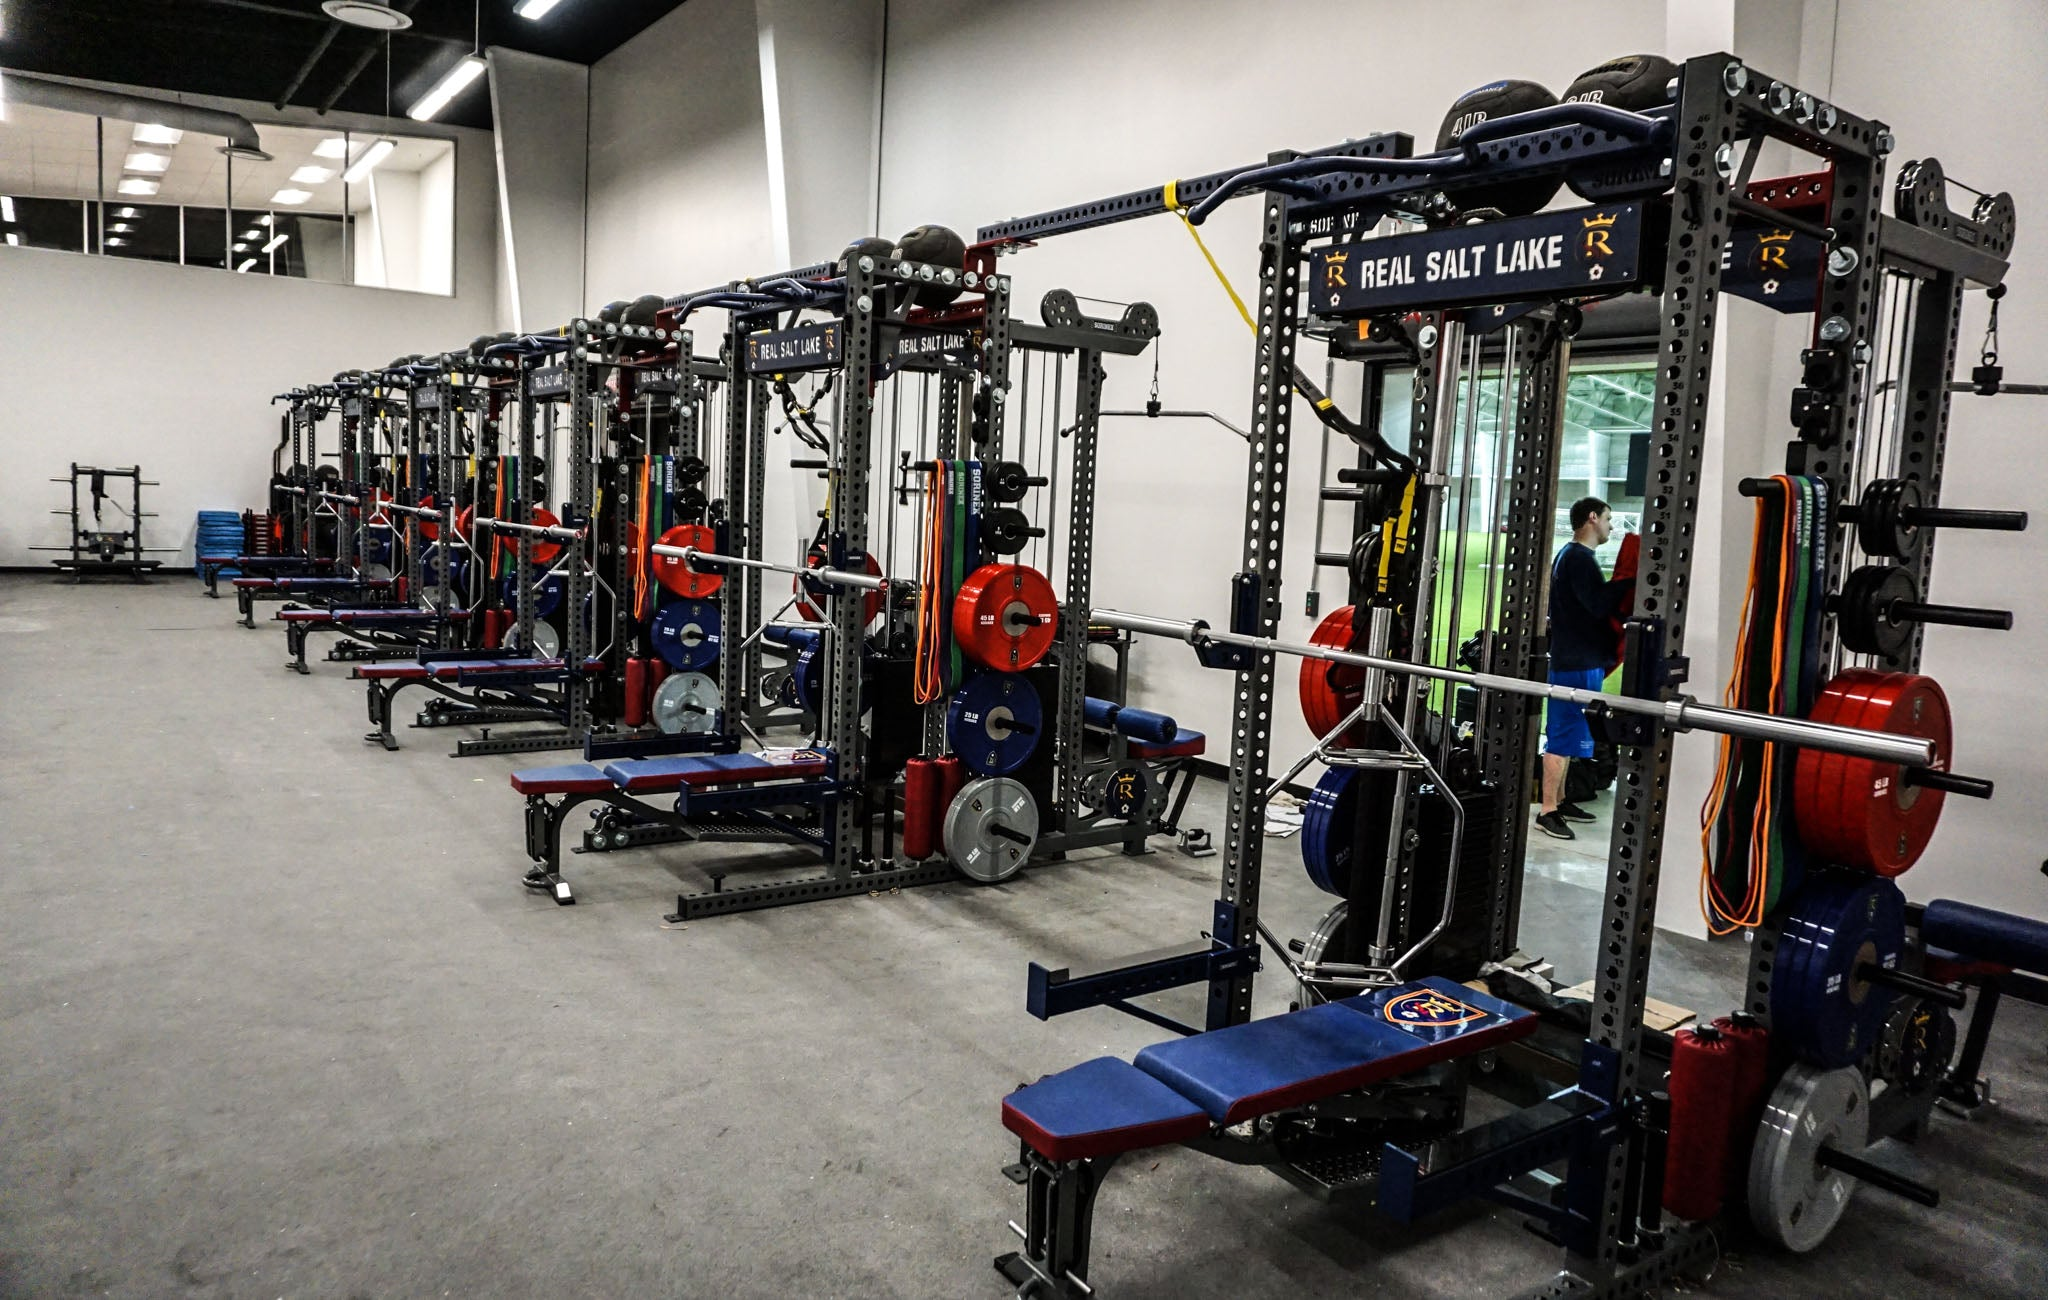 Real Salt Lake Weight Room